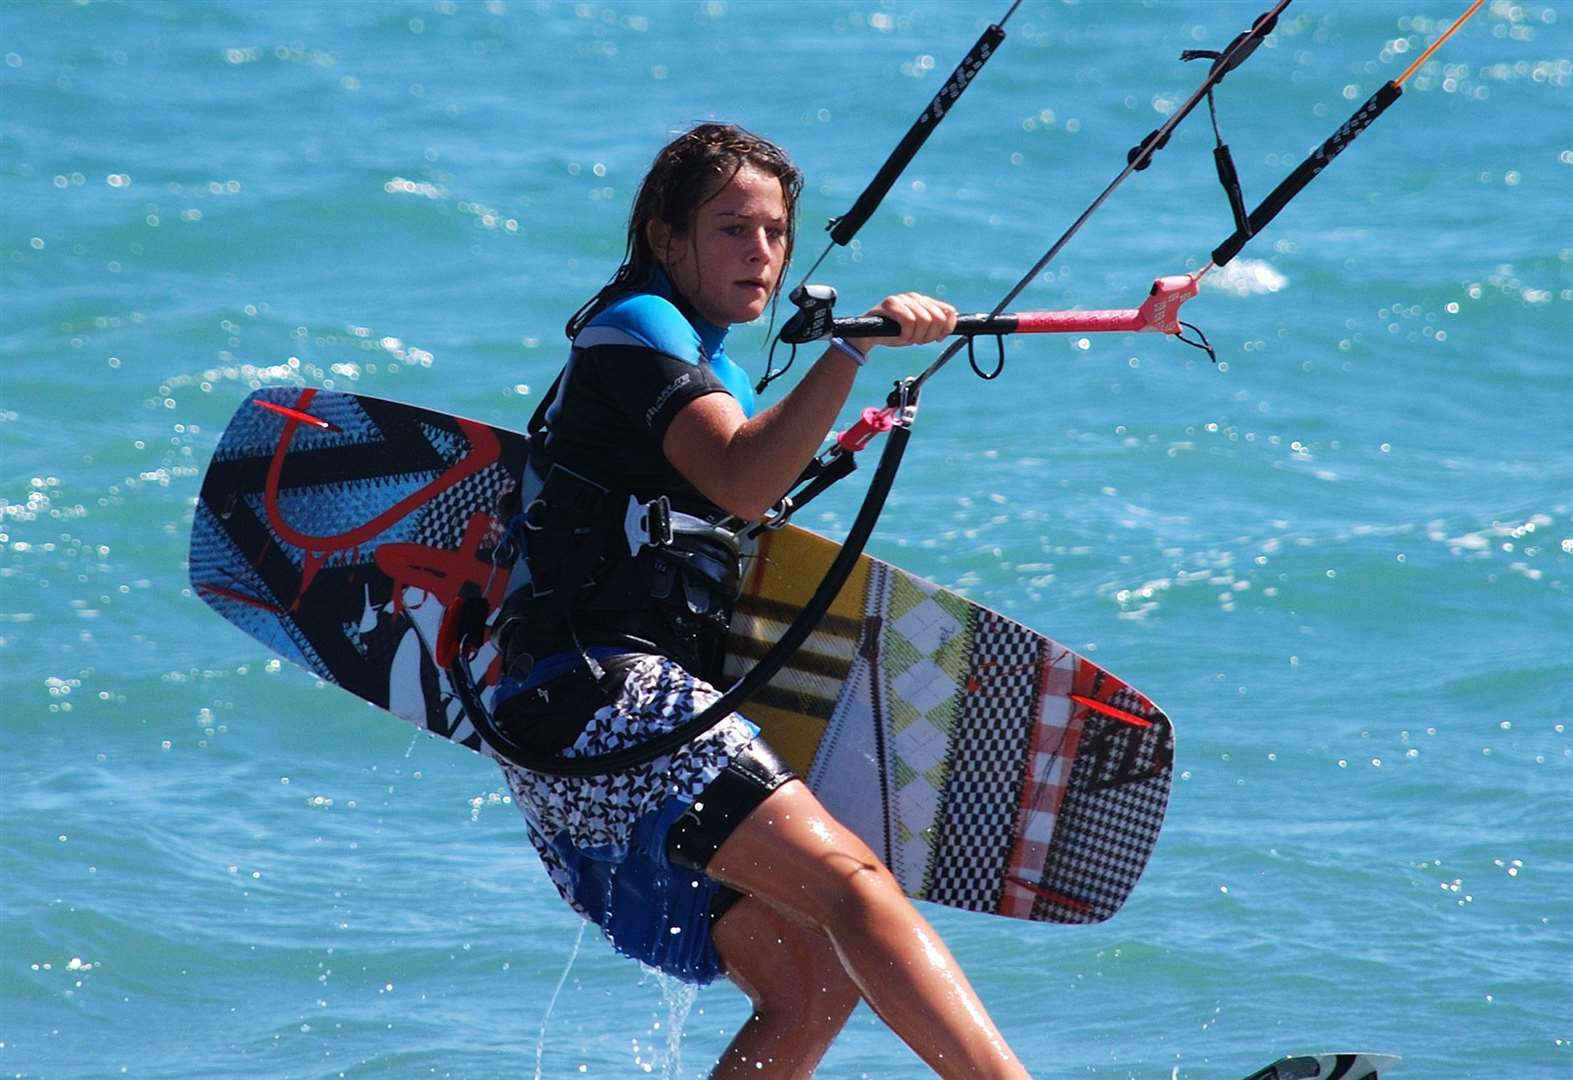 Kitesurfing Championships come to Kent coast